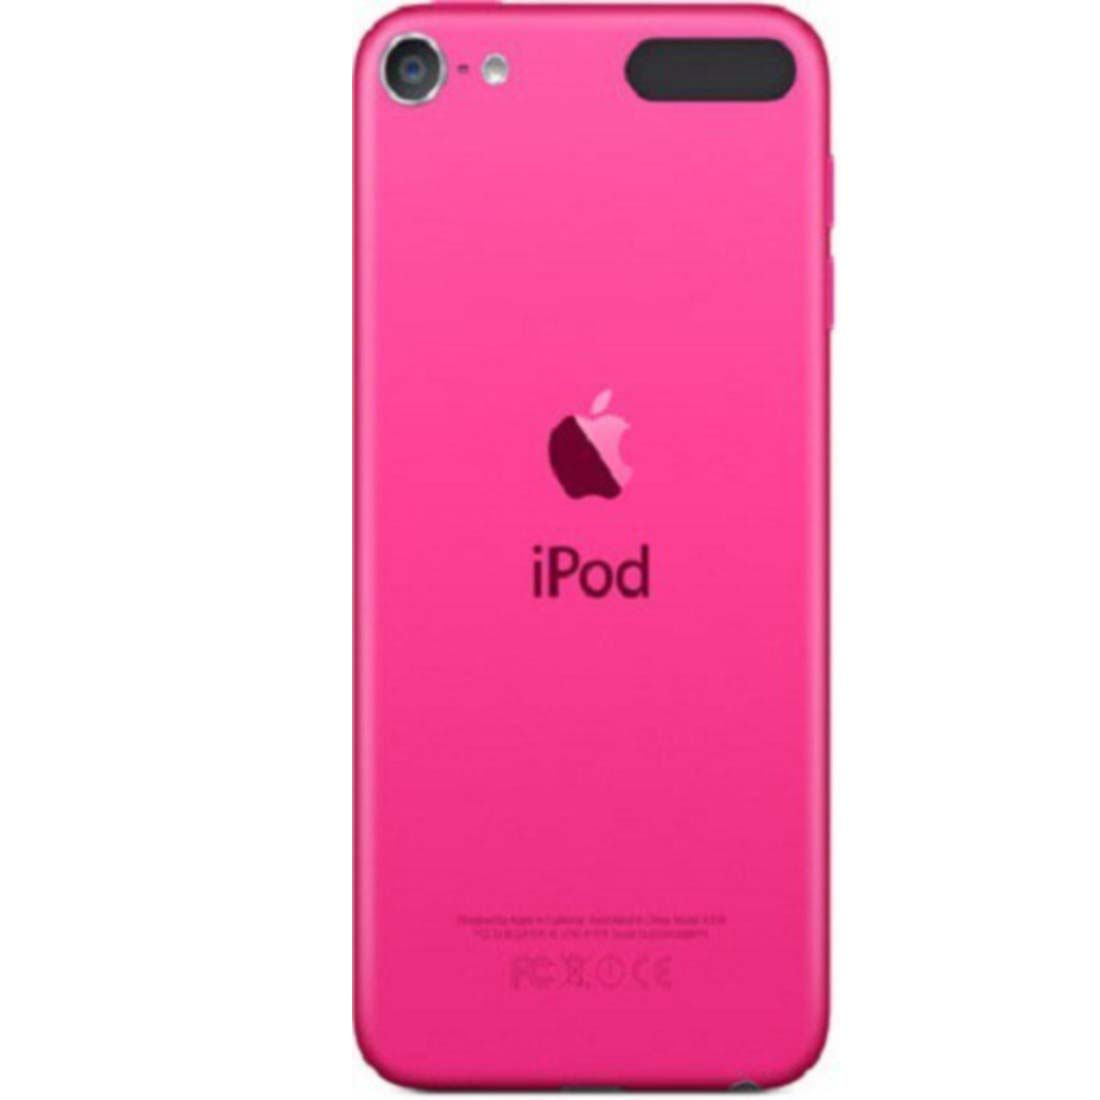 I Like The New Touch Of Pink In: Apple IPod Touch 32GB 6th Generation